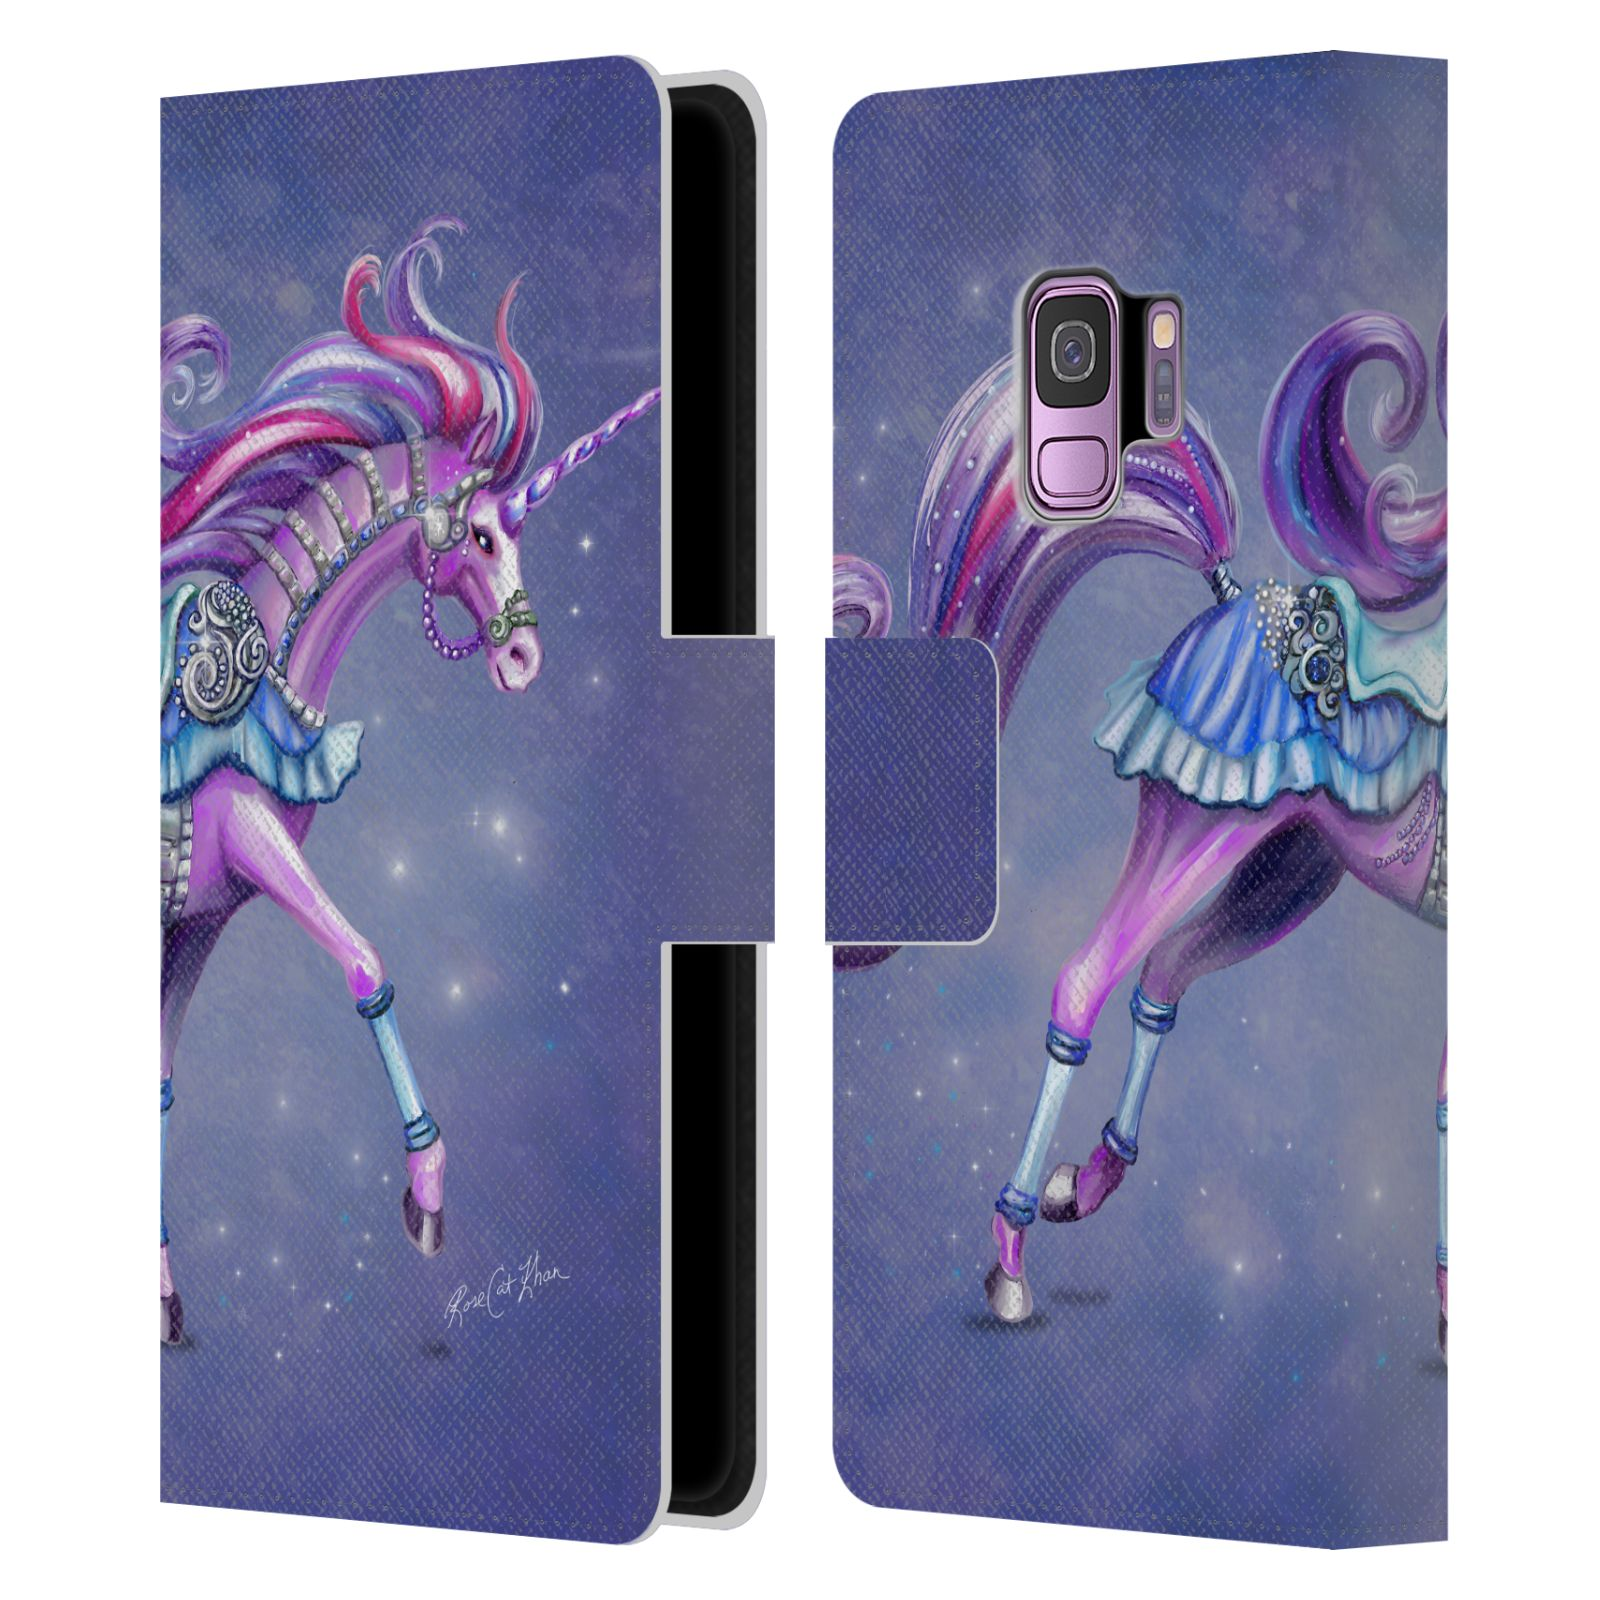 OFFICIAL-ROSE-KHAN-UNICORNS-LEATHER-BOOK-WALLET-CASE-COVER-FOR-SAMSUNG-PHONES-1